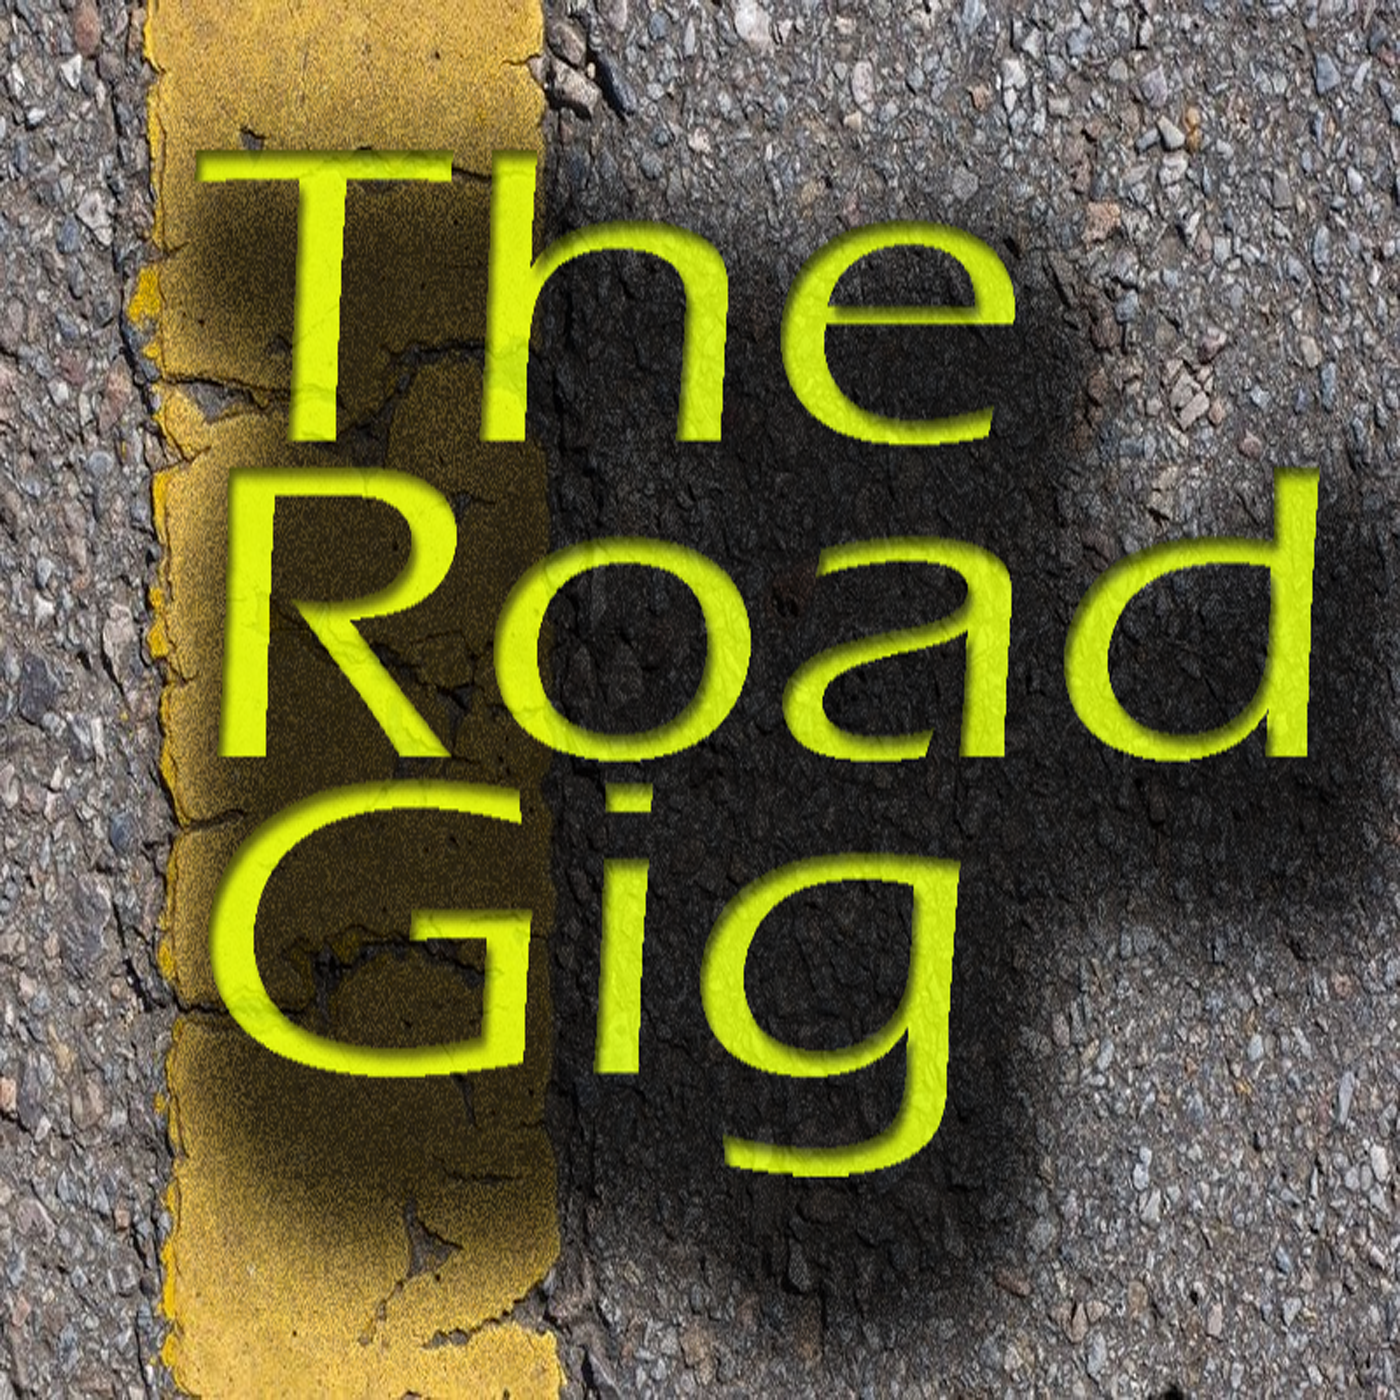 The Road Gig